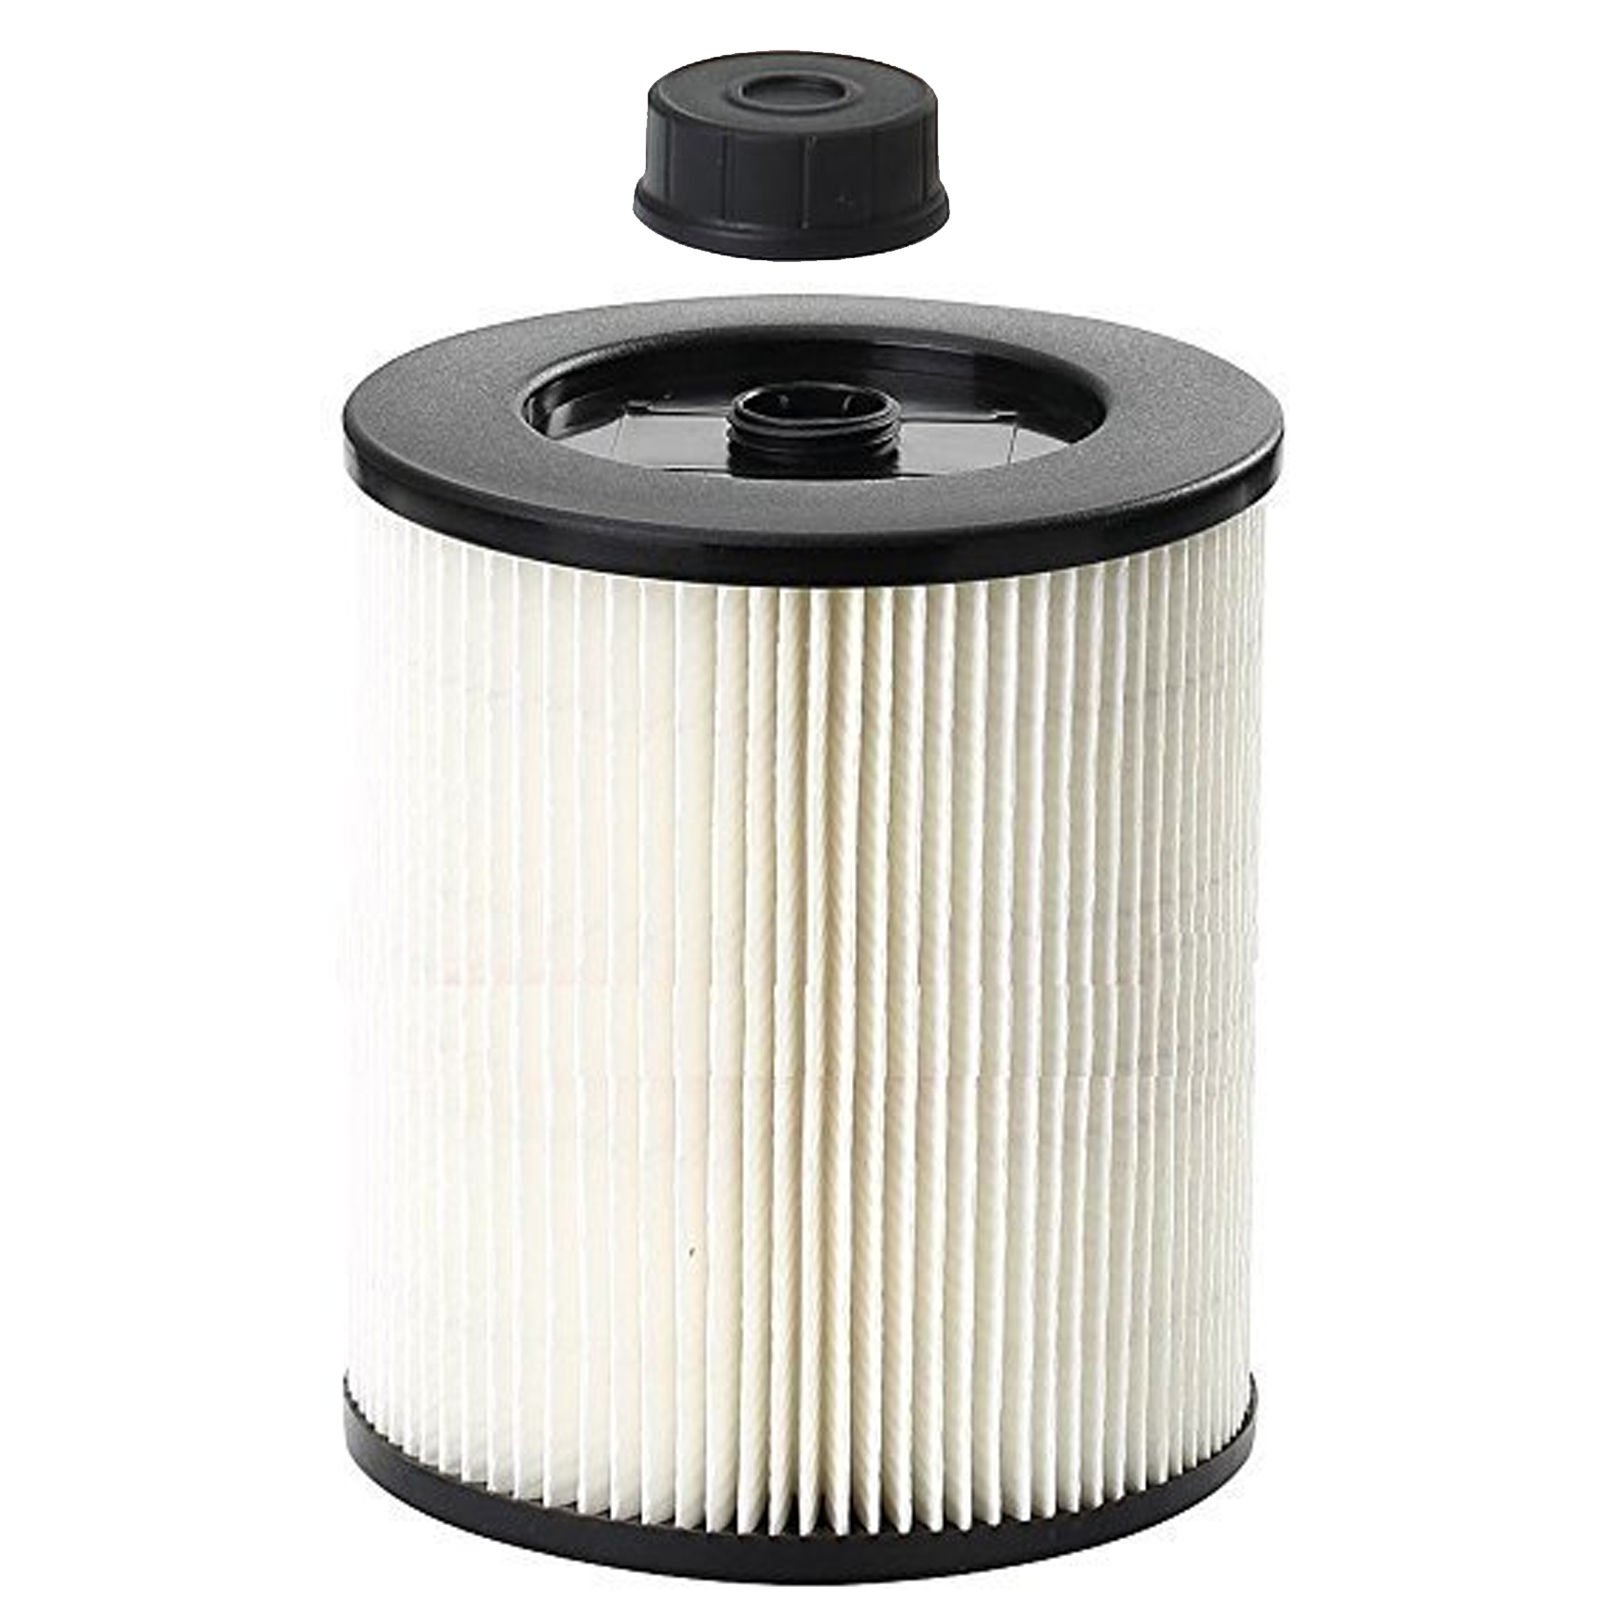 Vacuum Filter Filter For Shop Vac/Craftsman 17816, 9-17816 Replacement Wet Dry